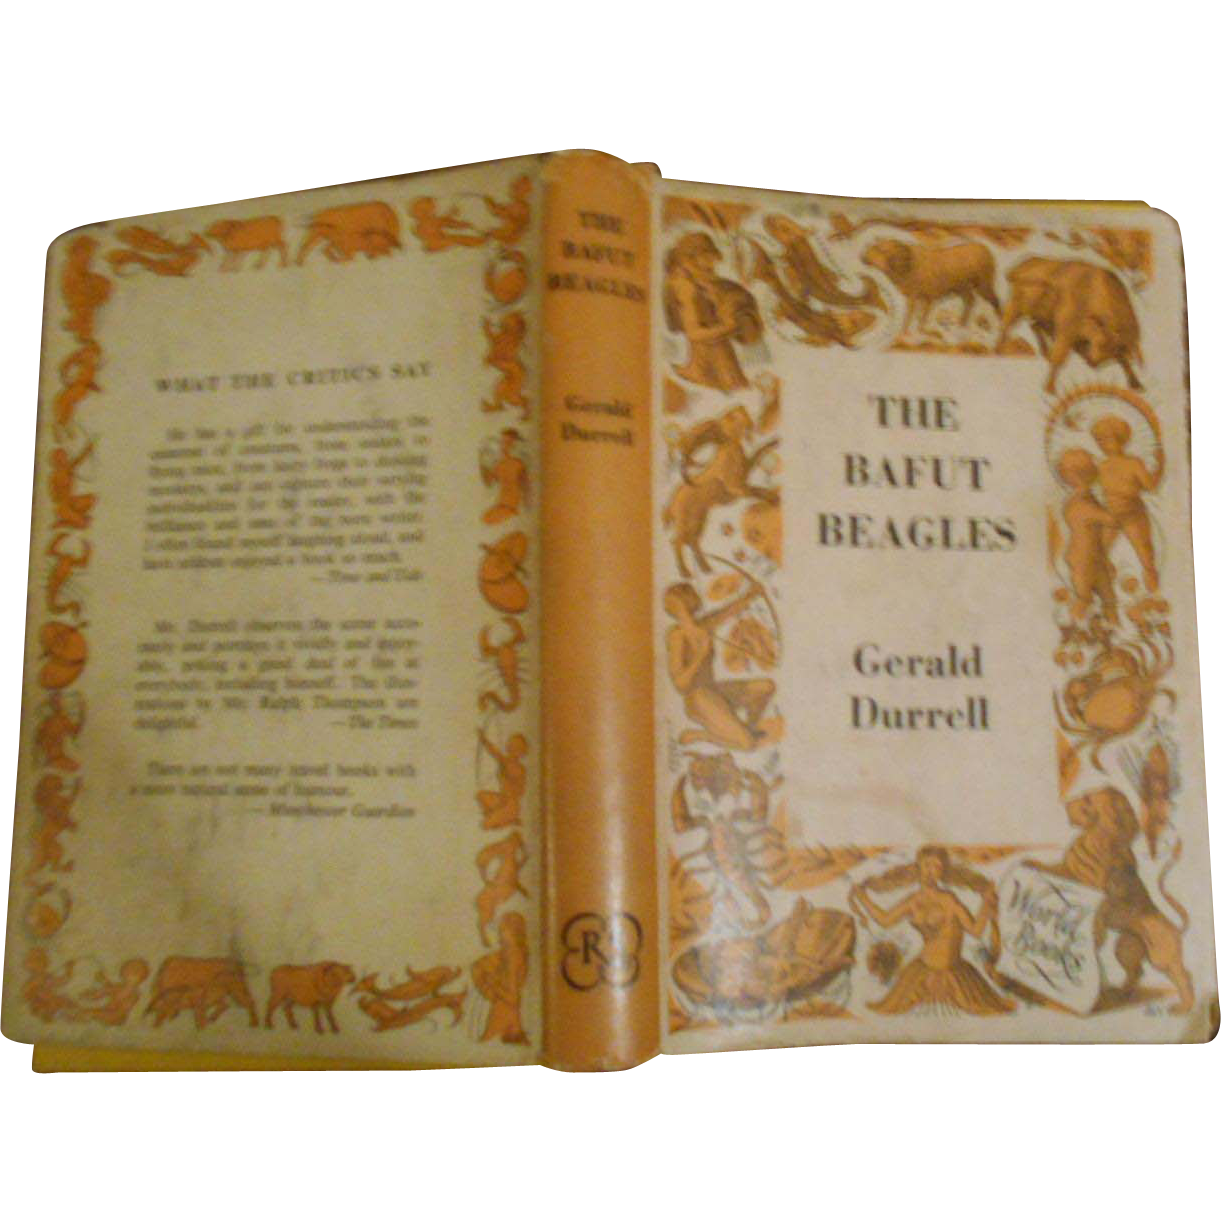 Vintage Children's Hard Cover Book The Bafut Beagles by Gerald Durrell